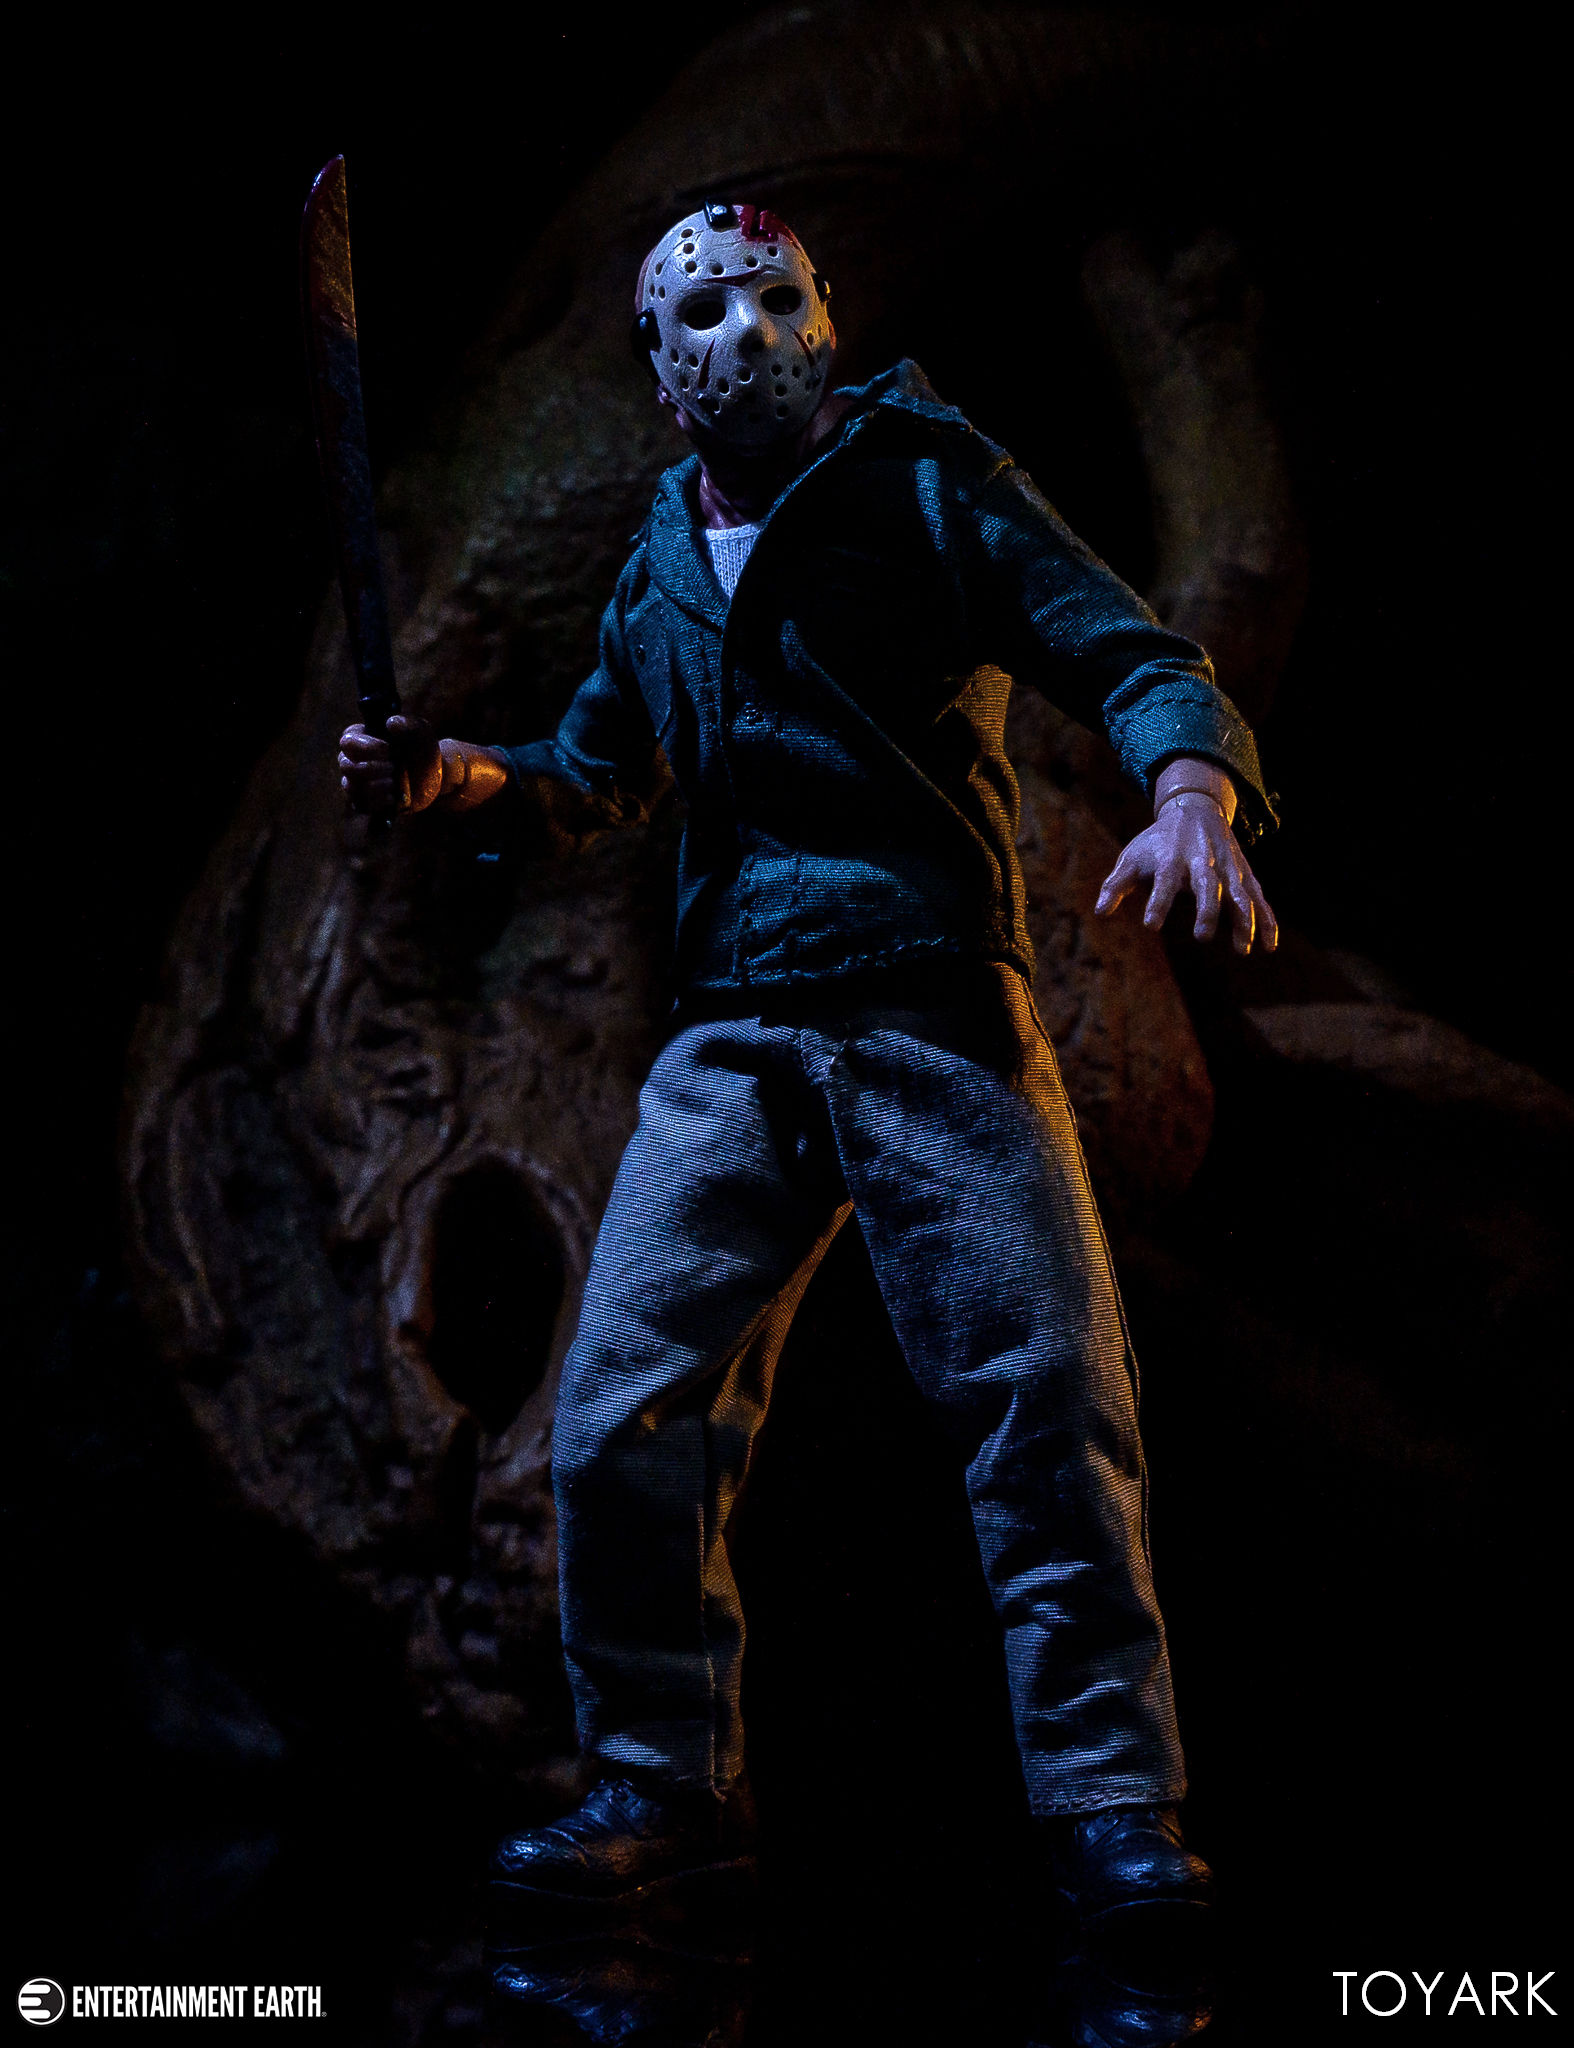 https://news.toyark.com/wp-content/uploads/sites/4/2019/04/One12-Part-3-Jason-Voorhees-048.jpg